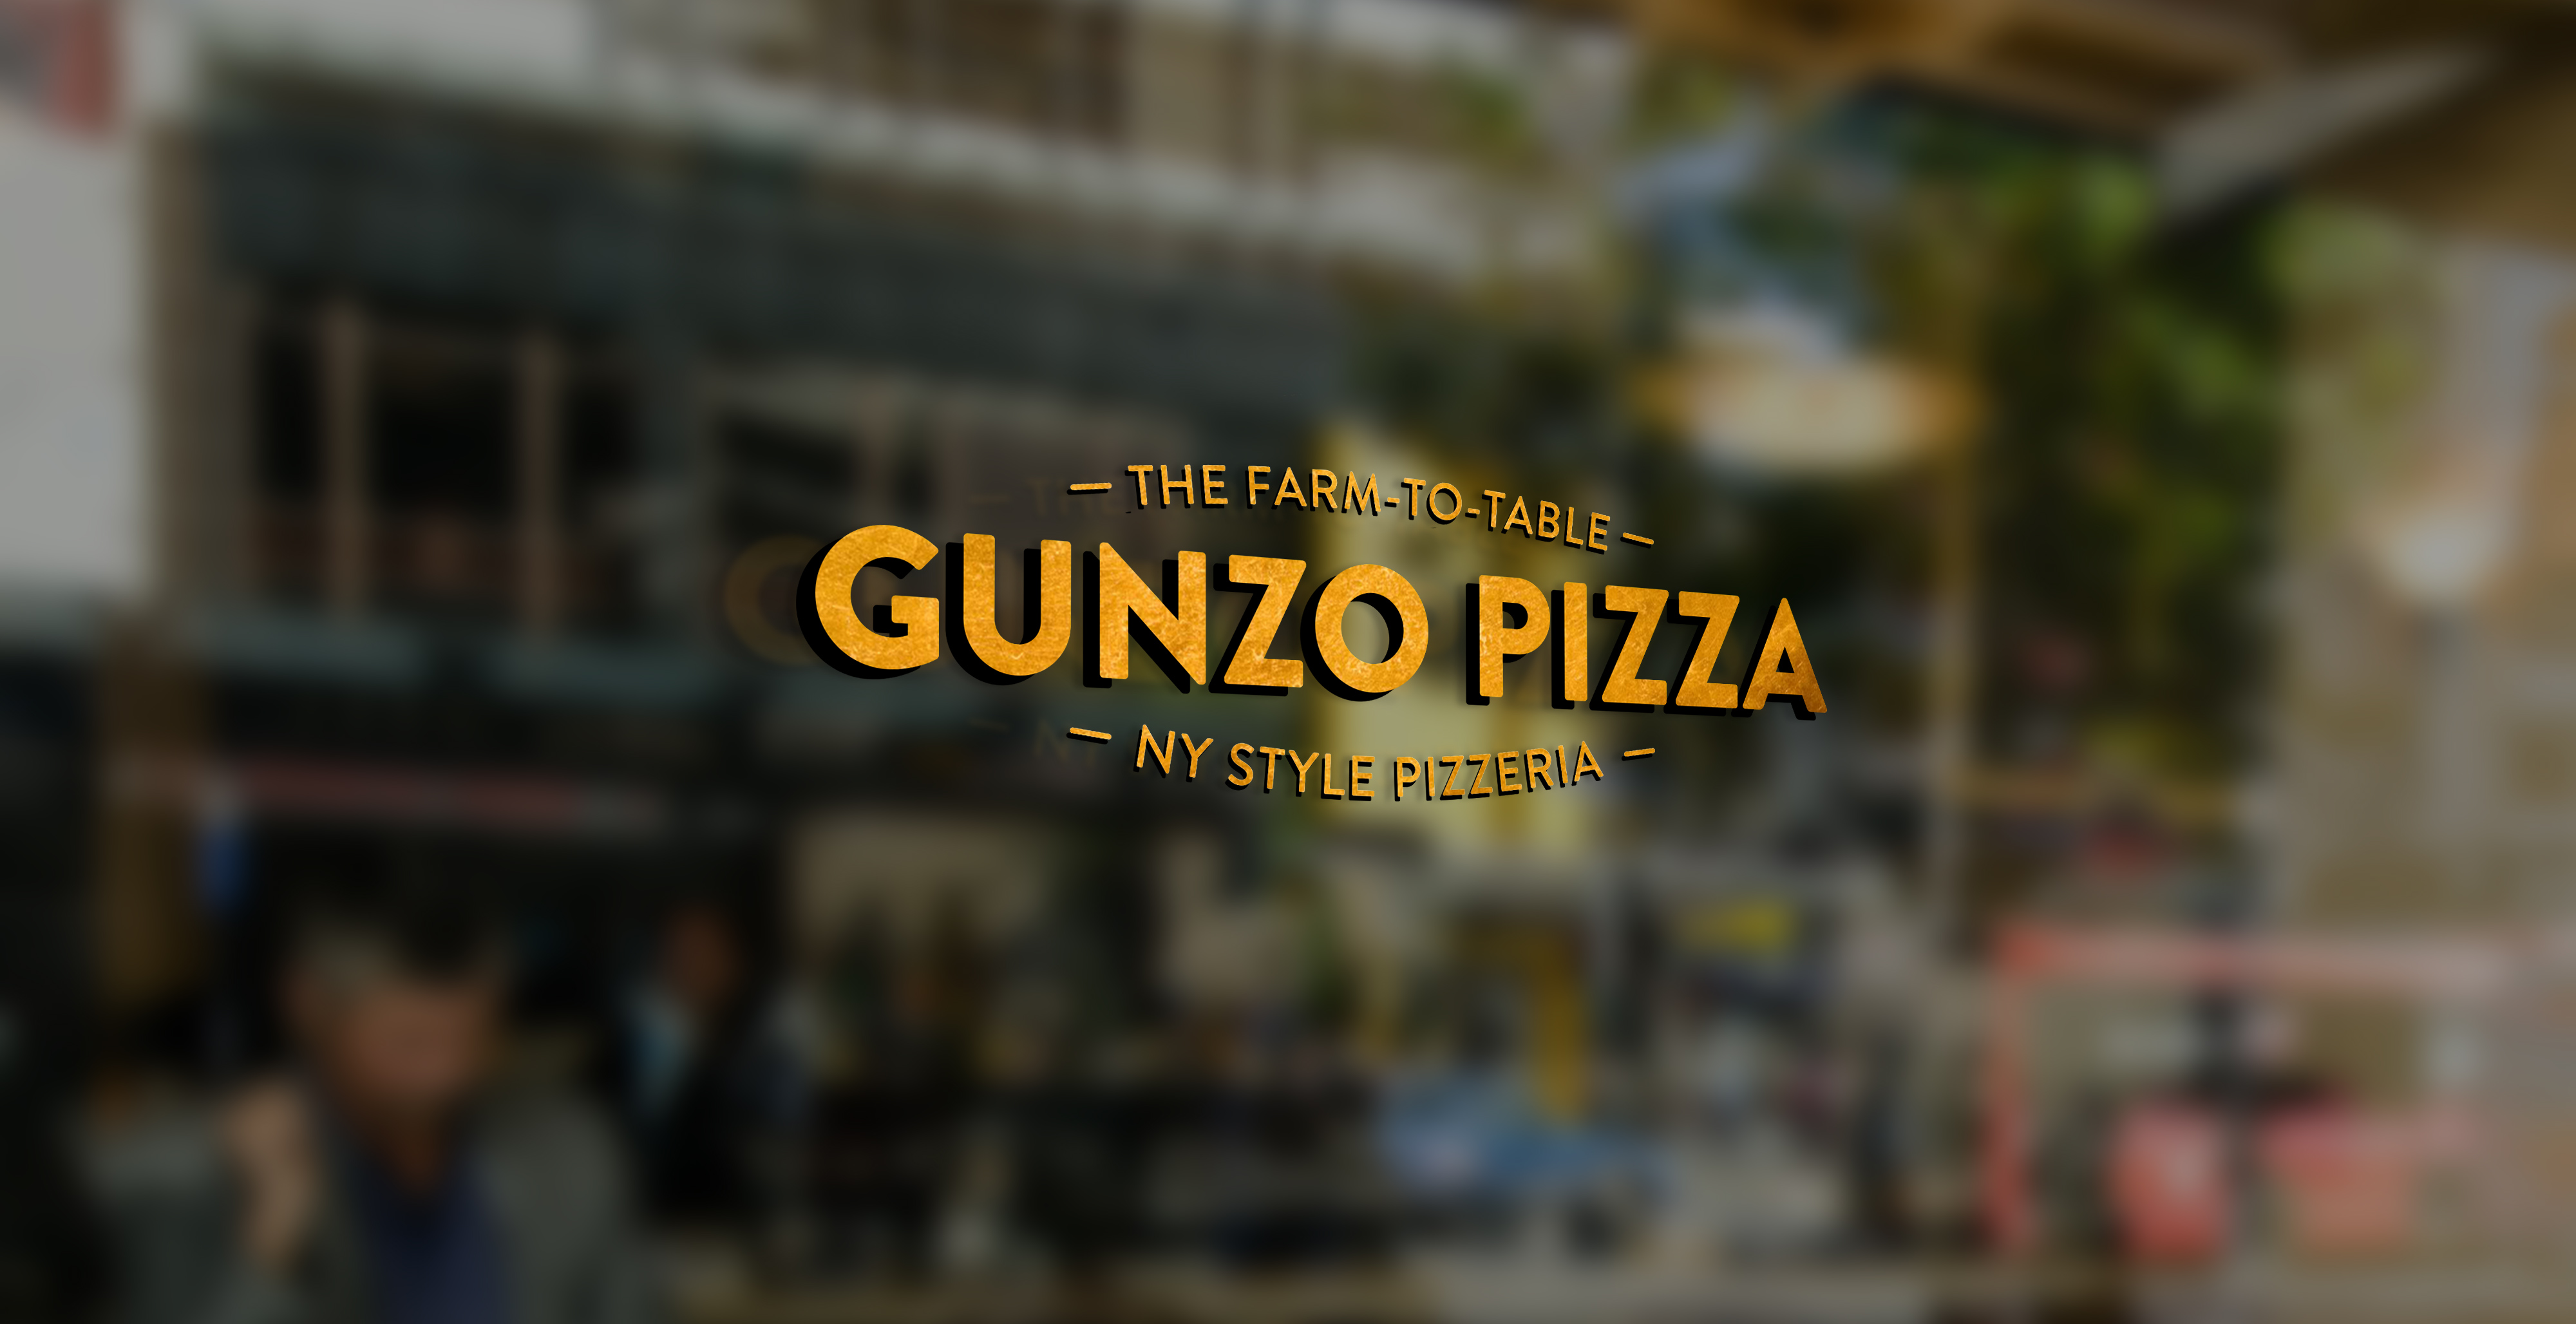 Gunzo Pizza